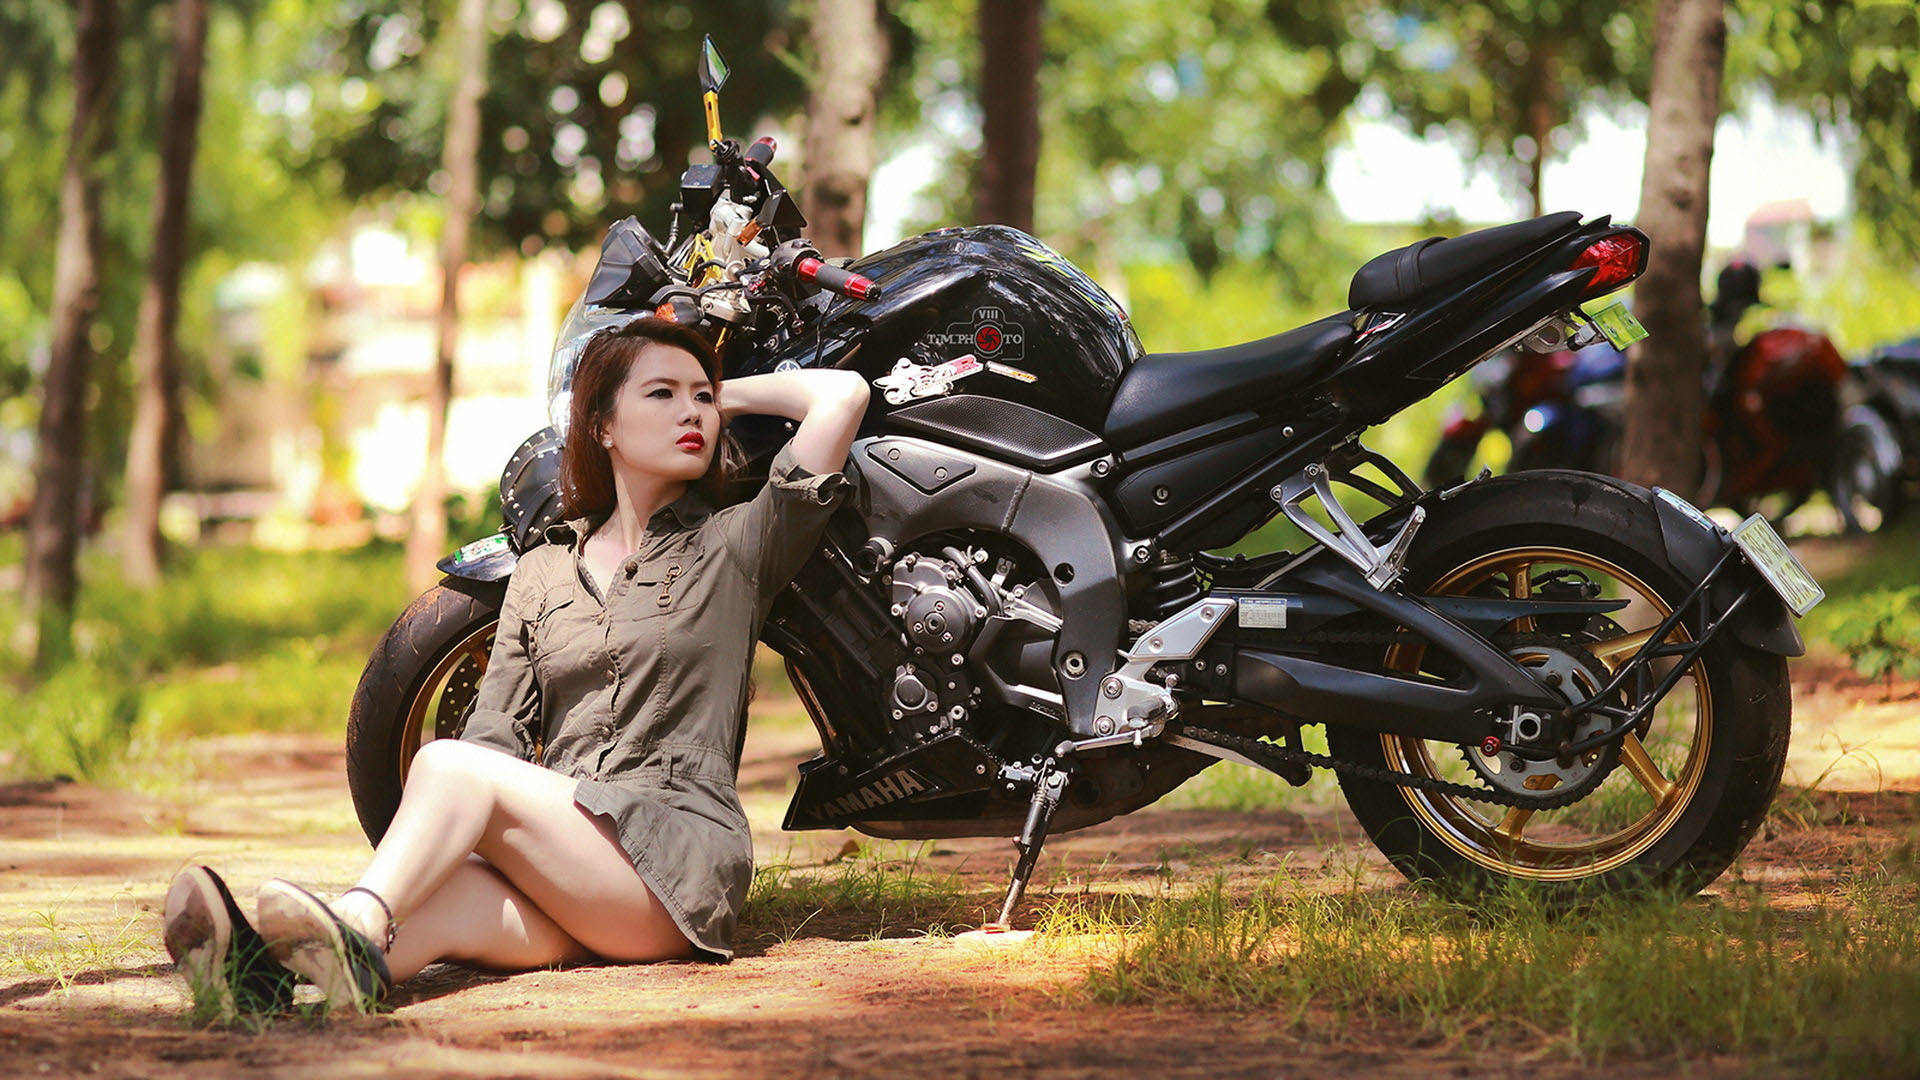 Girl with Bike Wallpaper Images